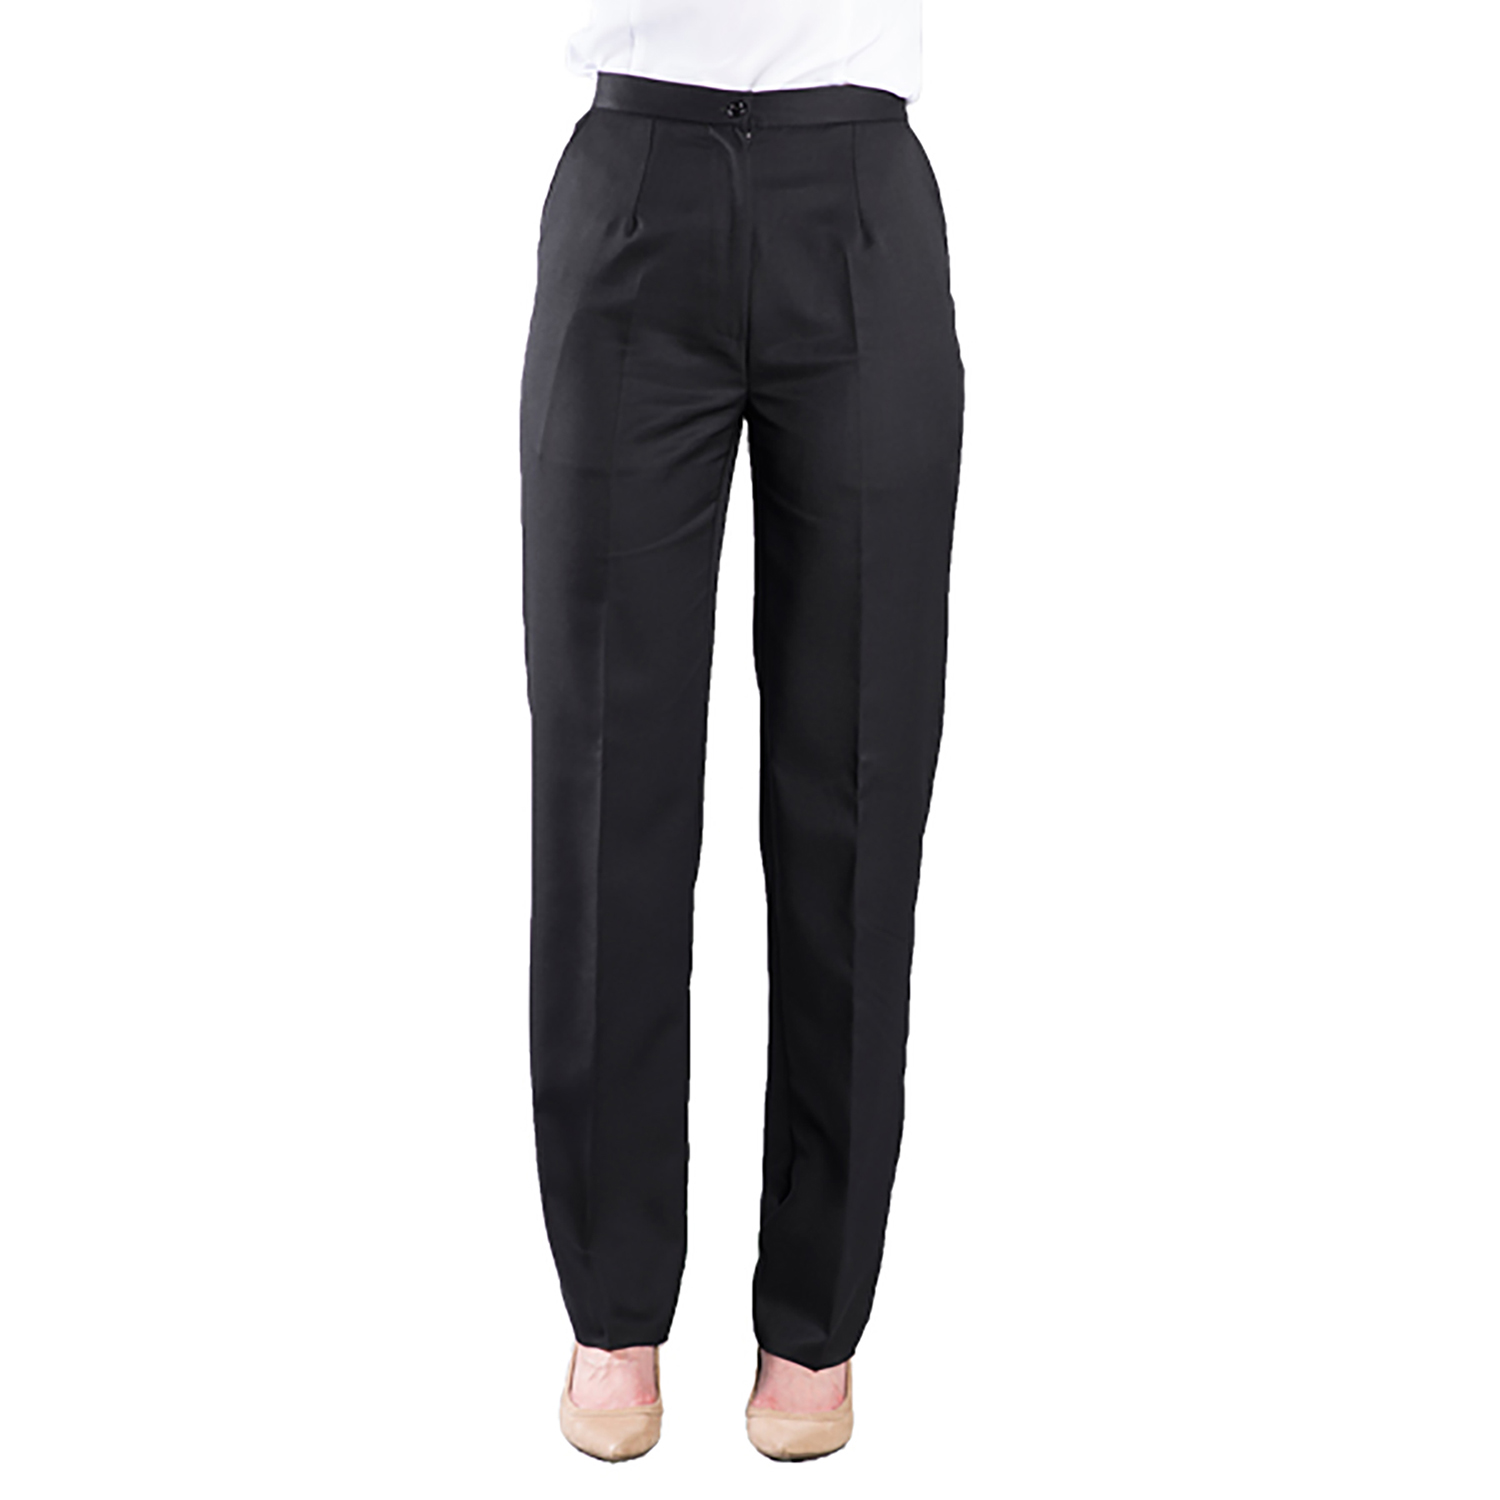 Executive Apparel Womens Tailored Front Easywear Pants